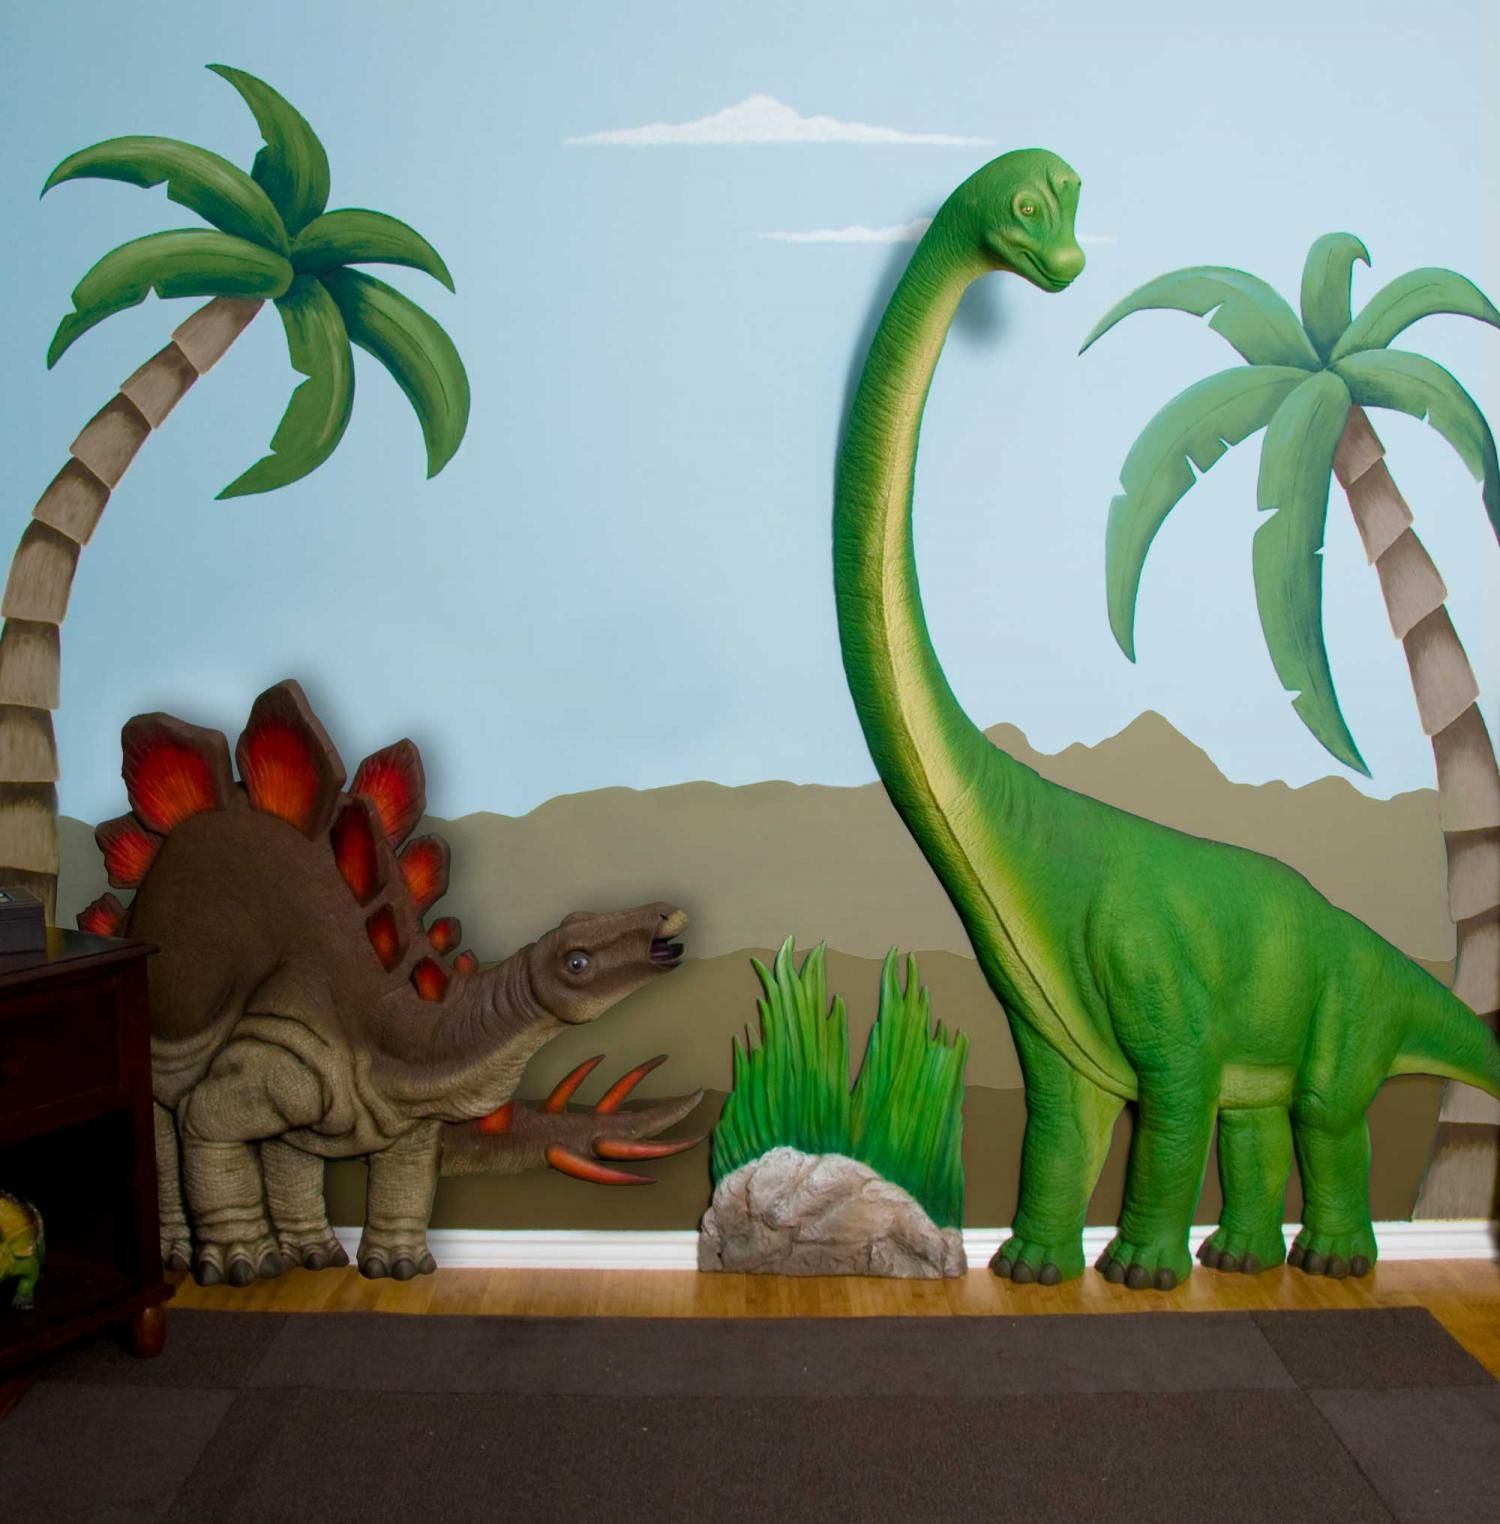 Dinosaur Room Decor Laura Ashley Kids Corner Dinosaurs Range D - 3d dinosaur wall decals